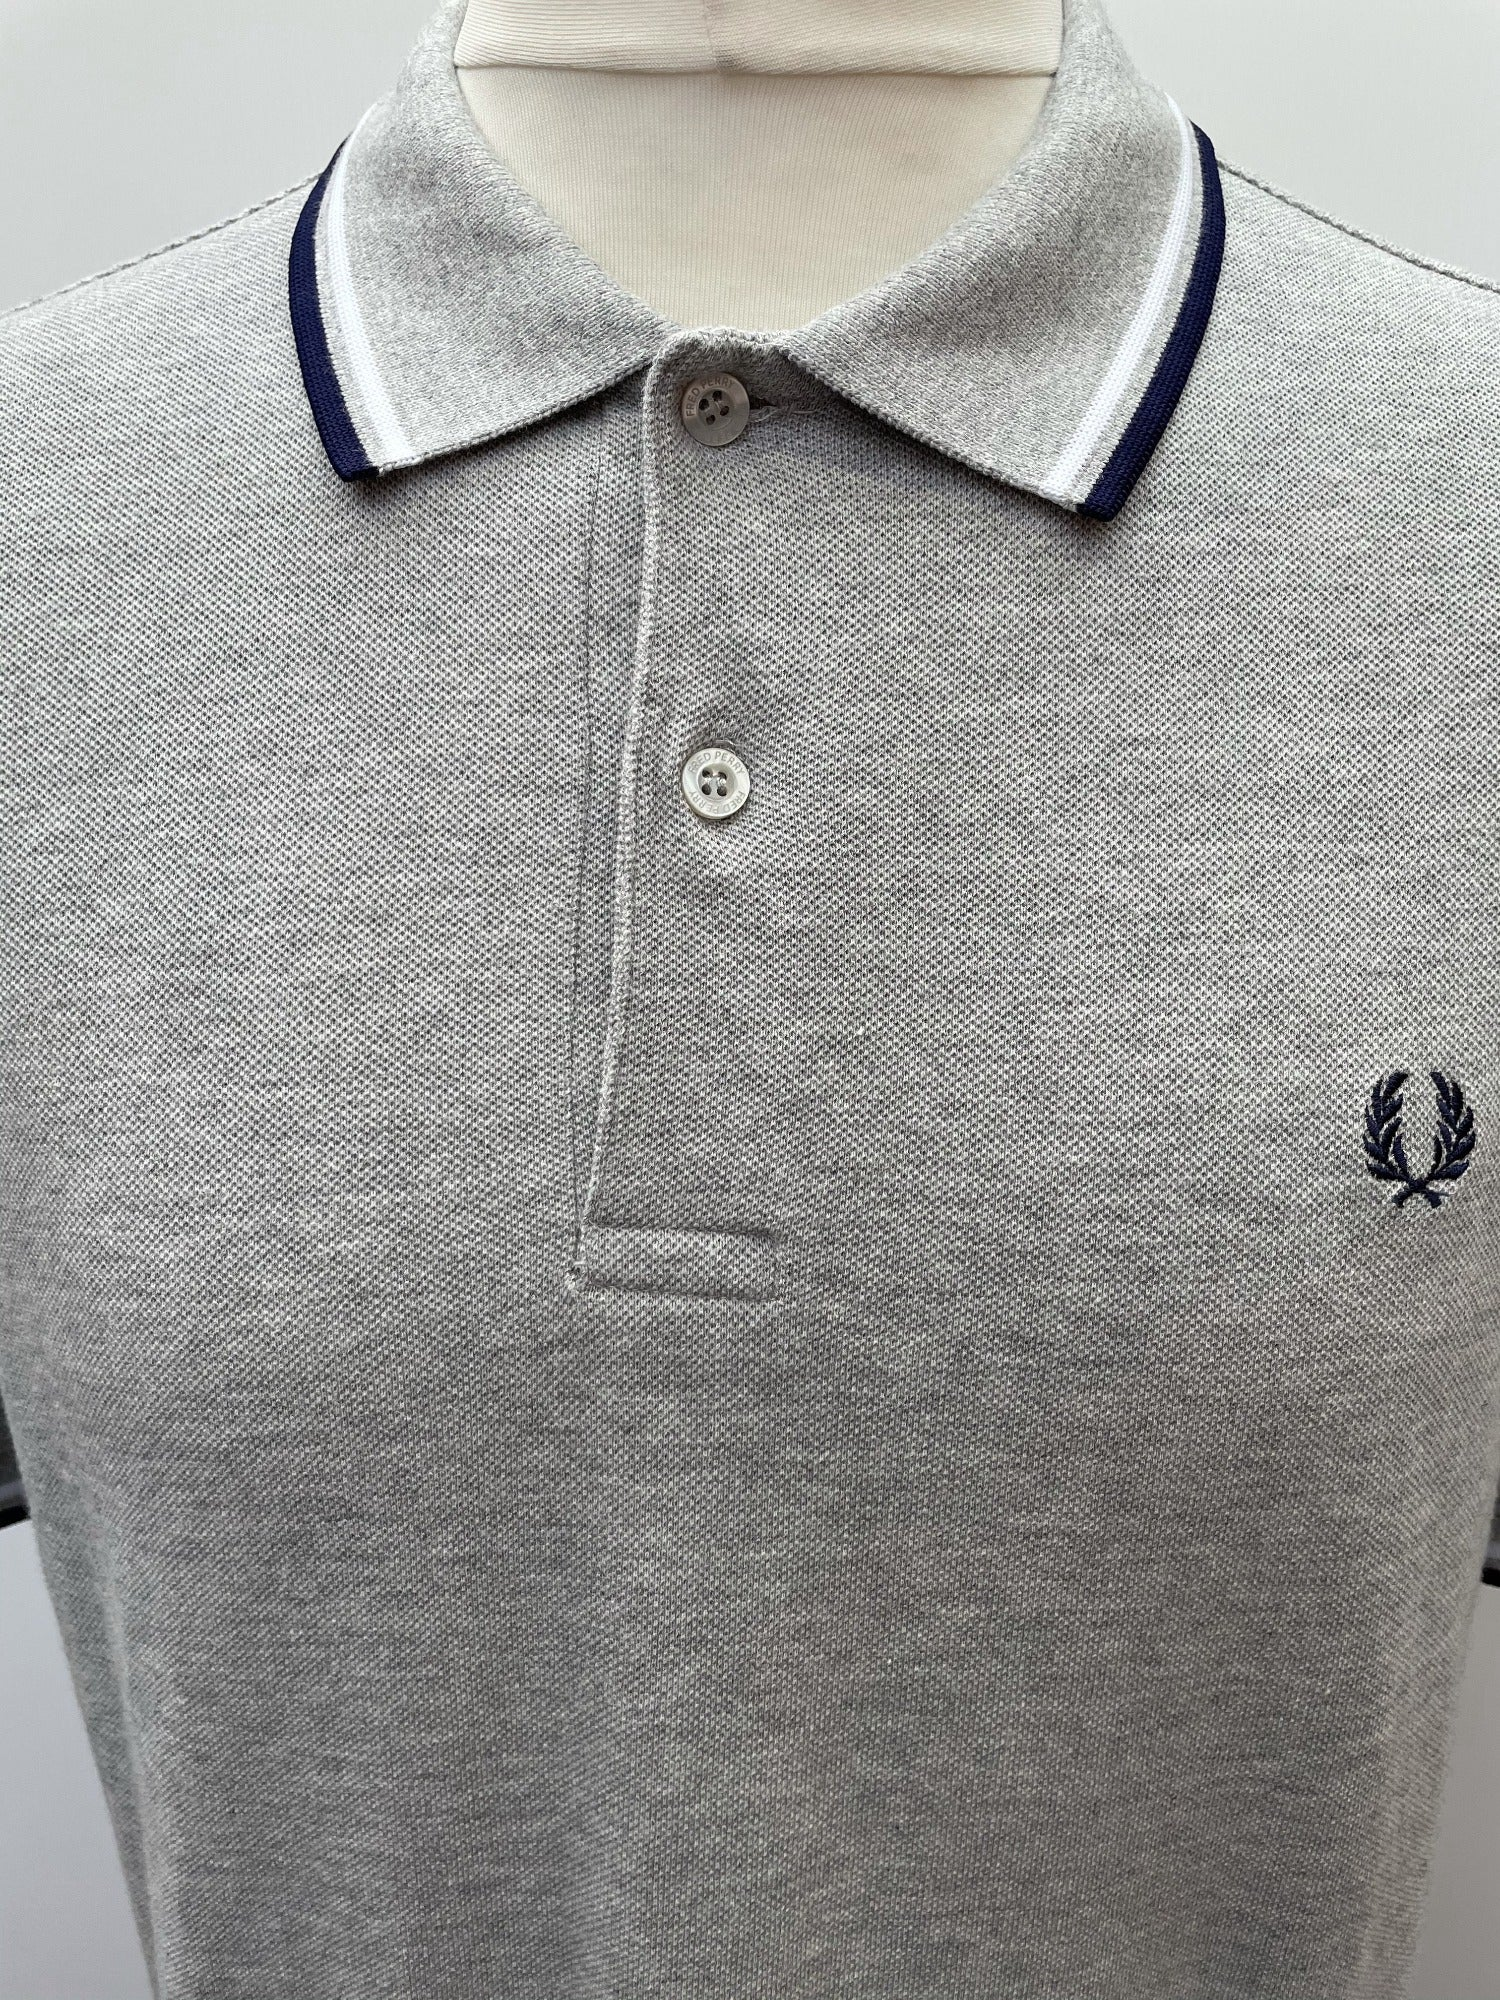 xl  vintage  summer  polo top  polo  navy stripe  mens  logo  Grey  Fred Perry  Cotton  blue urban vilage mens